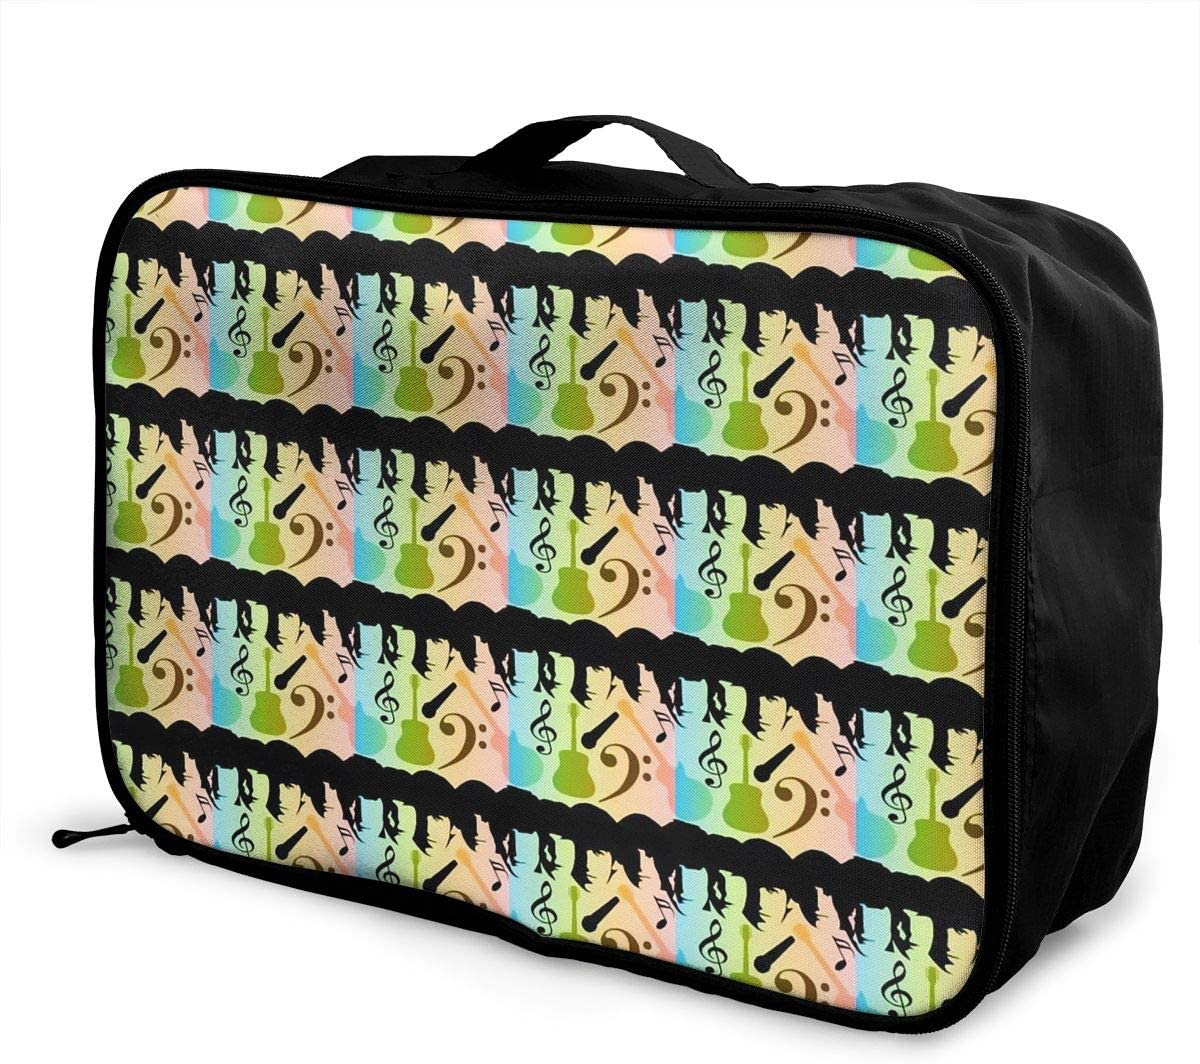 JTRVW Luggage Bags for Travel Portable Luggage Duffel Bag Galaxy Travel Bags Carry-on in Trolley Handle